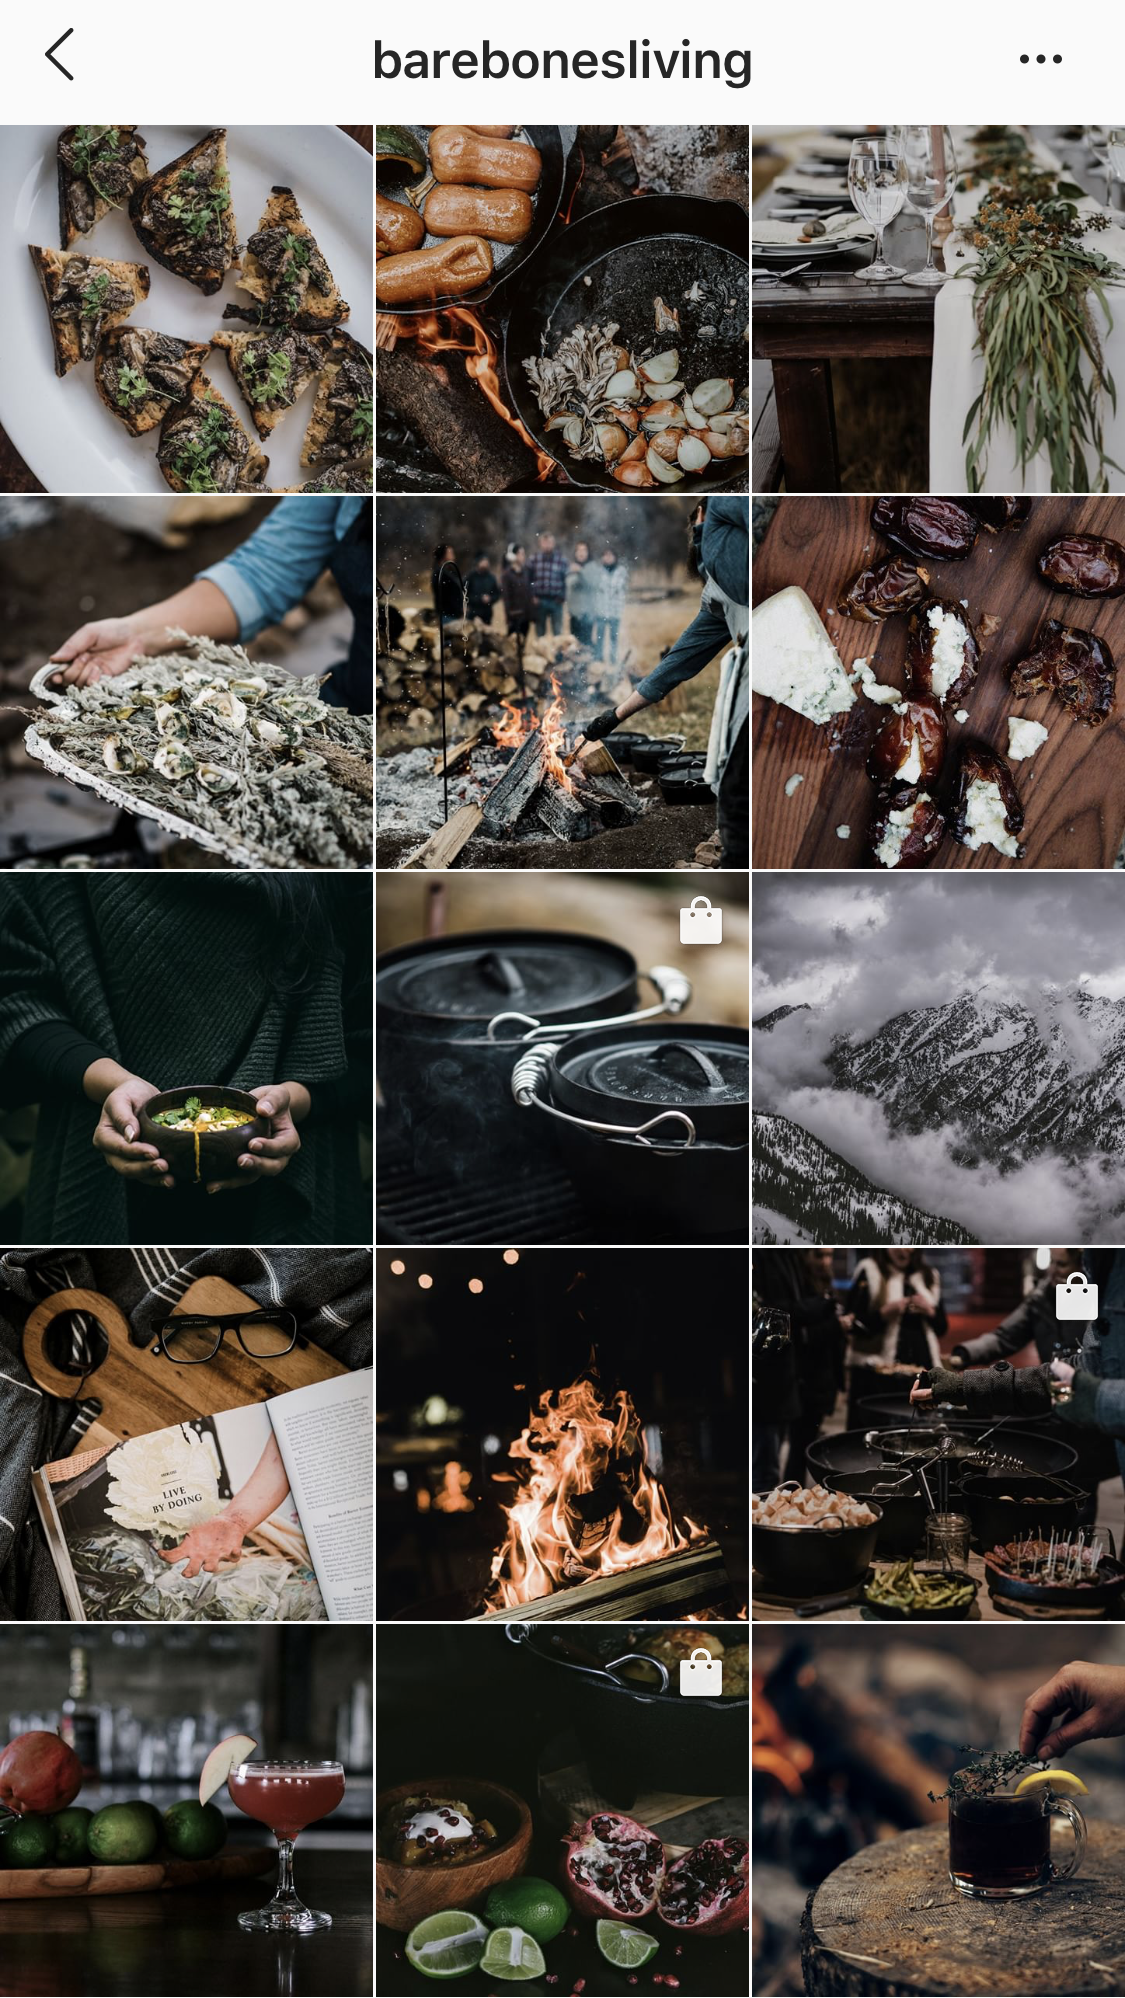 Bare Bones Living Instagram feed. An excellent example of how to use visual storytelling to elevate your brand. Images convey a sense of rustic sophistication for the outdoorsy, adventurous type